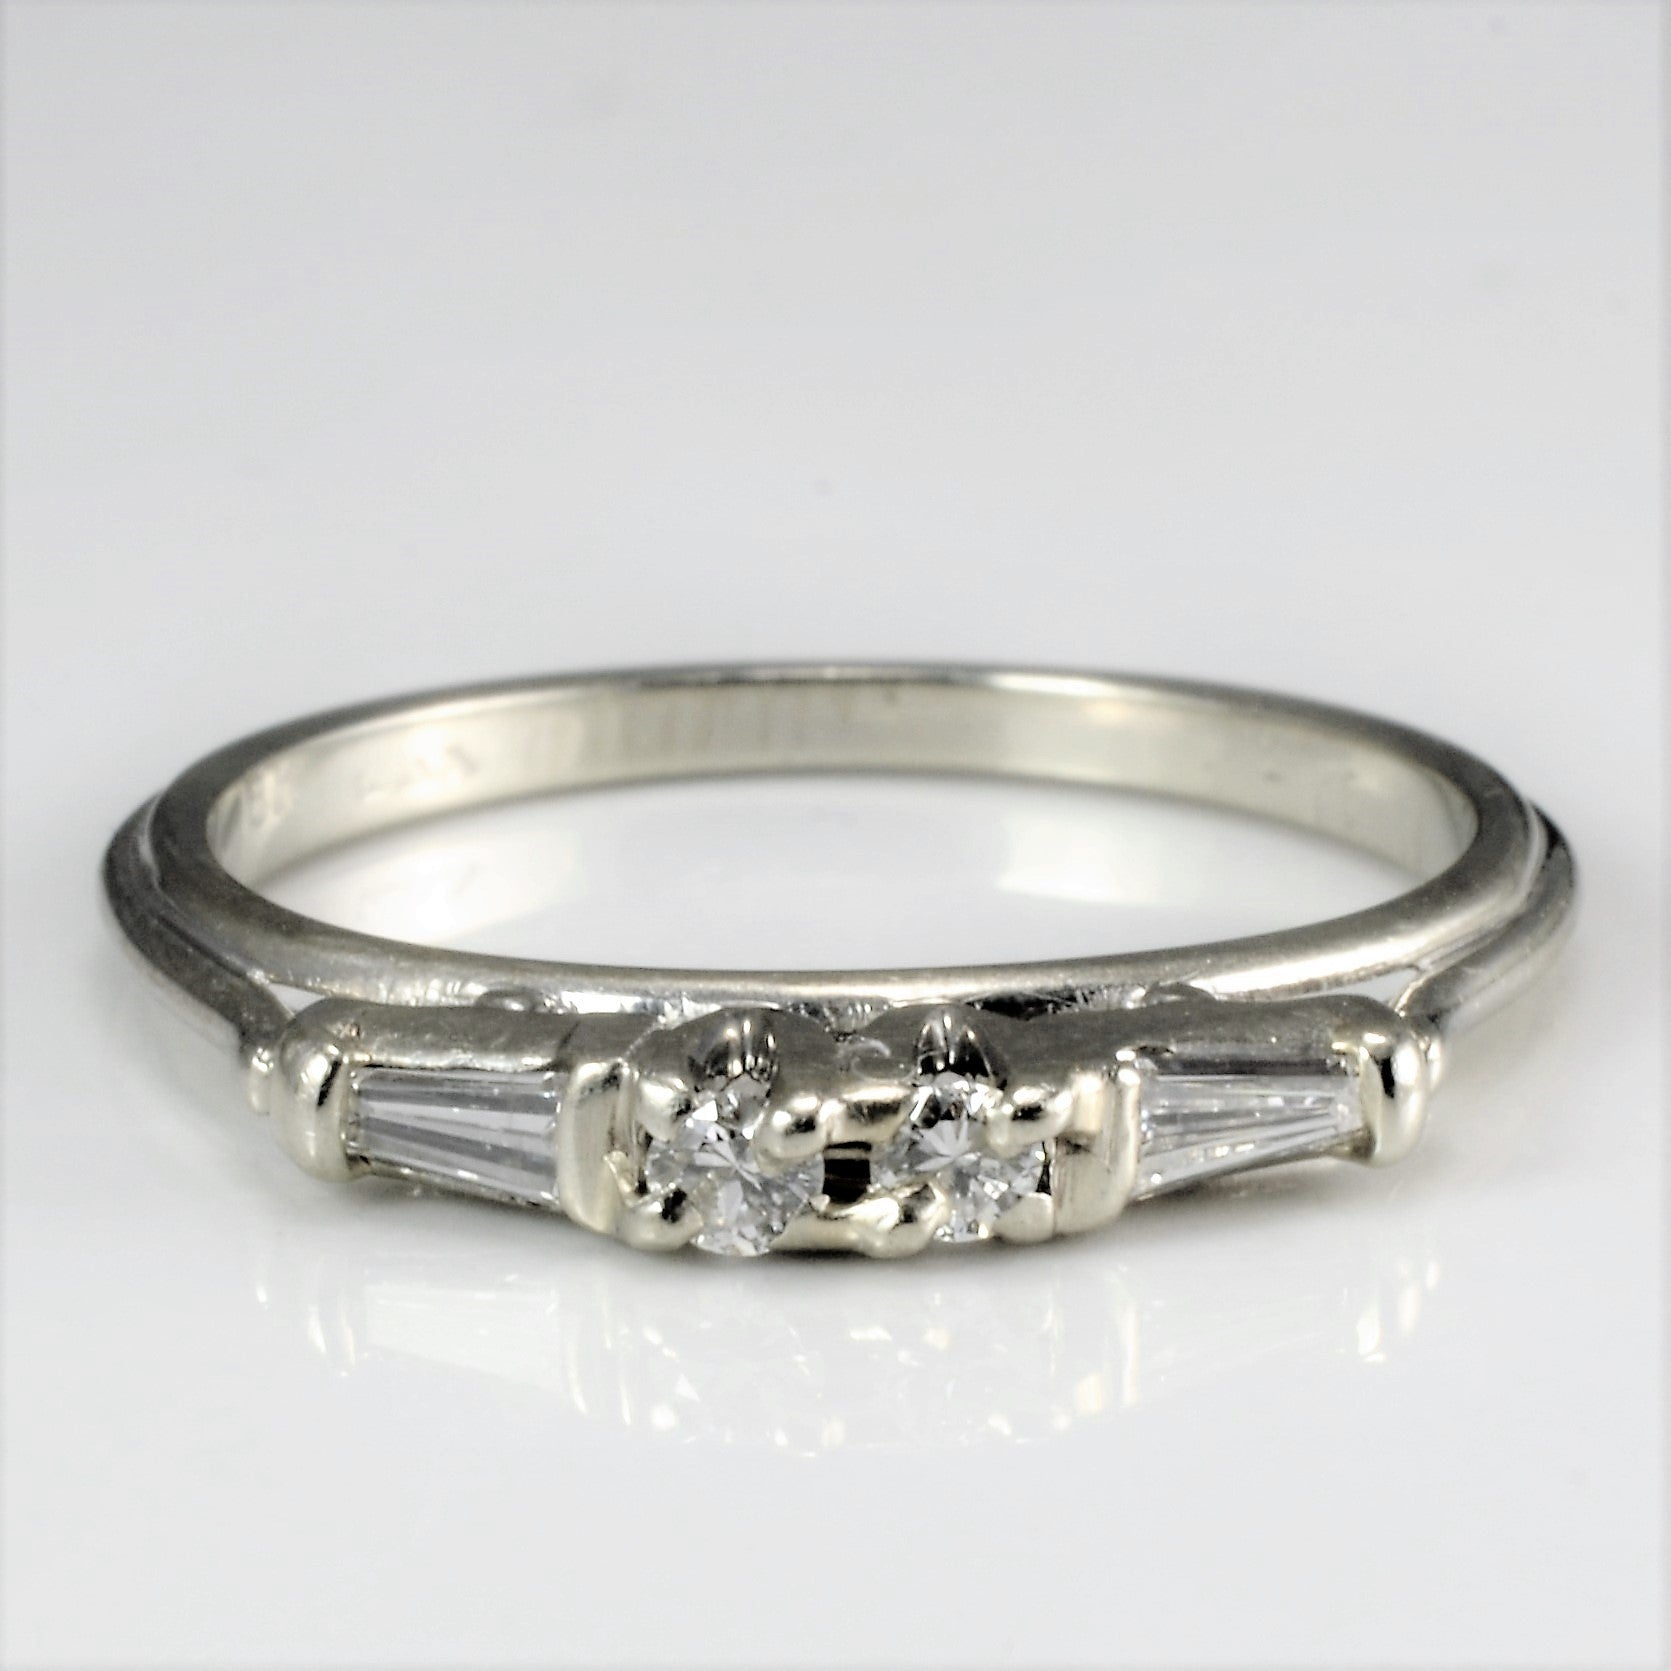 High Set Diamond Wedding Ring | 0.12 ctw, SZ 5.25 |